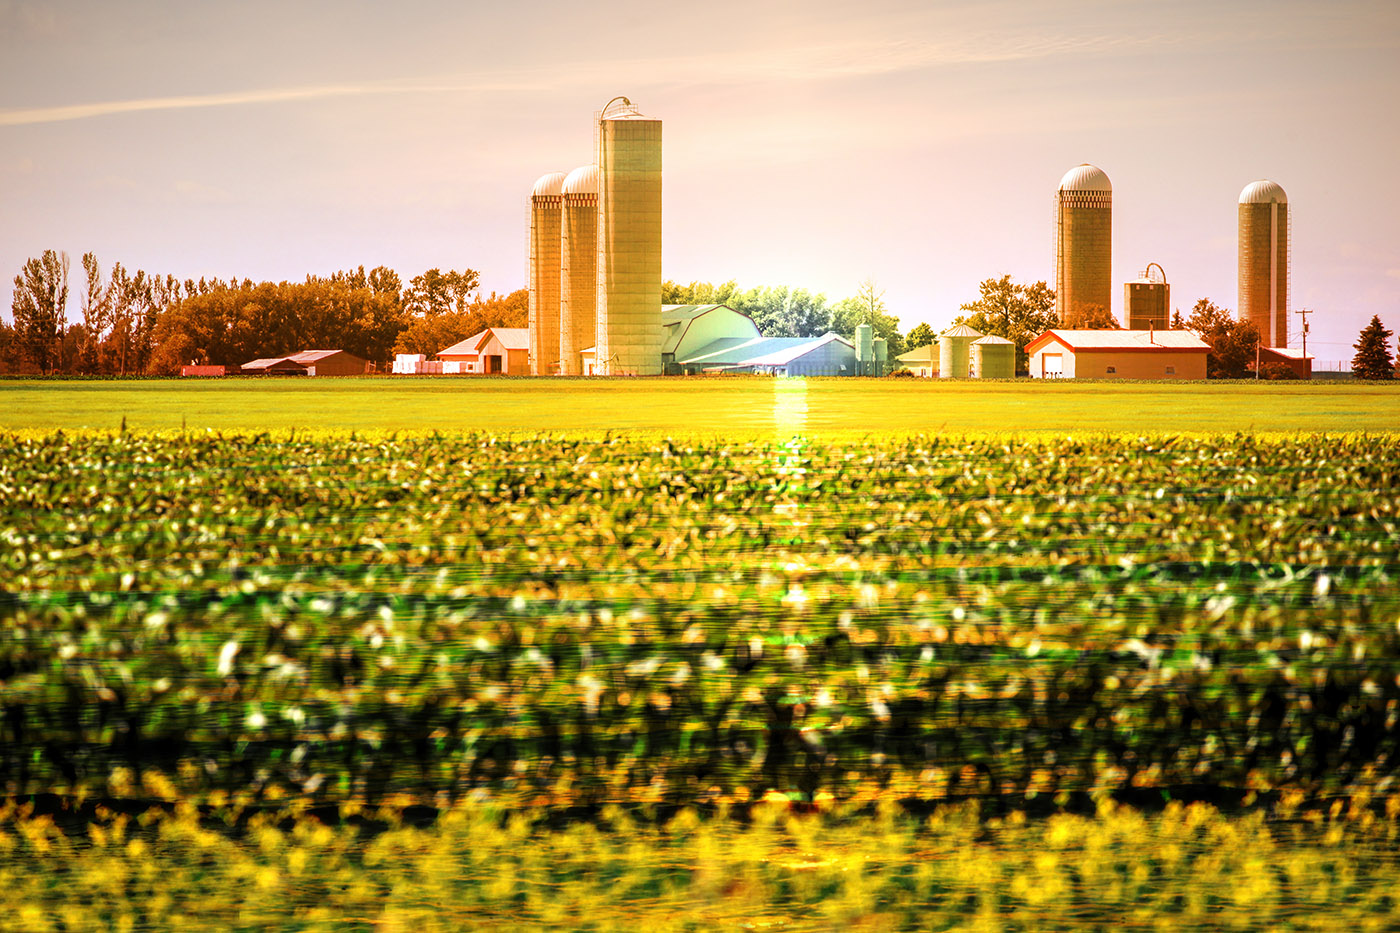 Modern Farmland and Agriculture Real Estate - Stock Photo